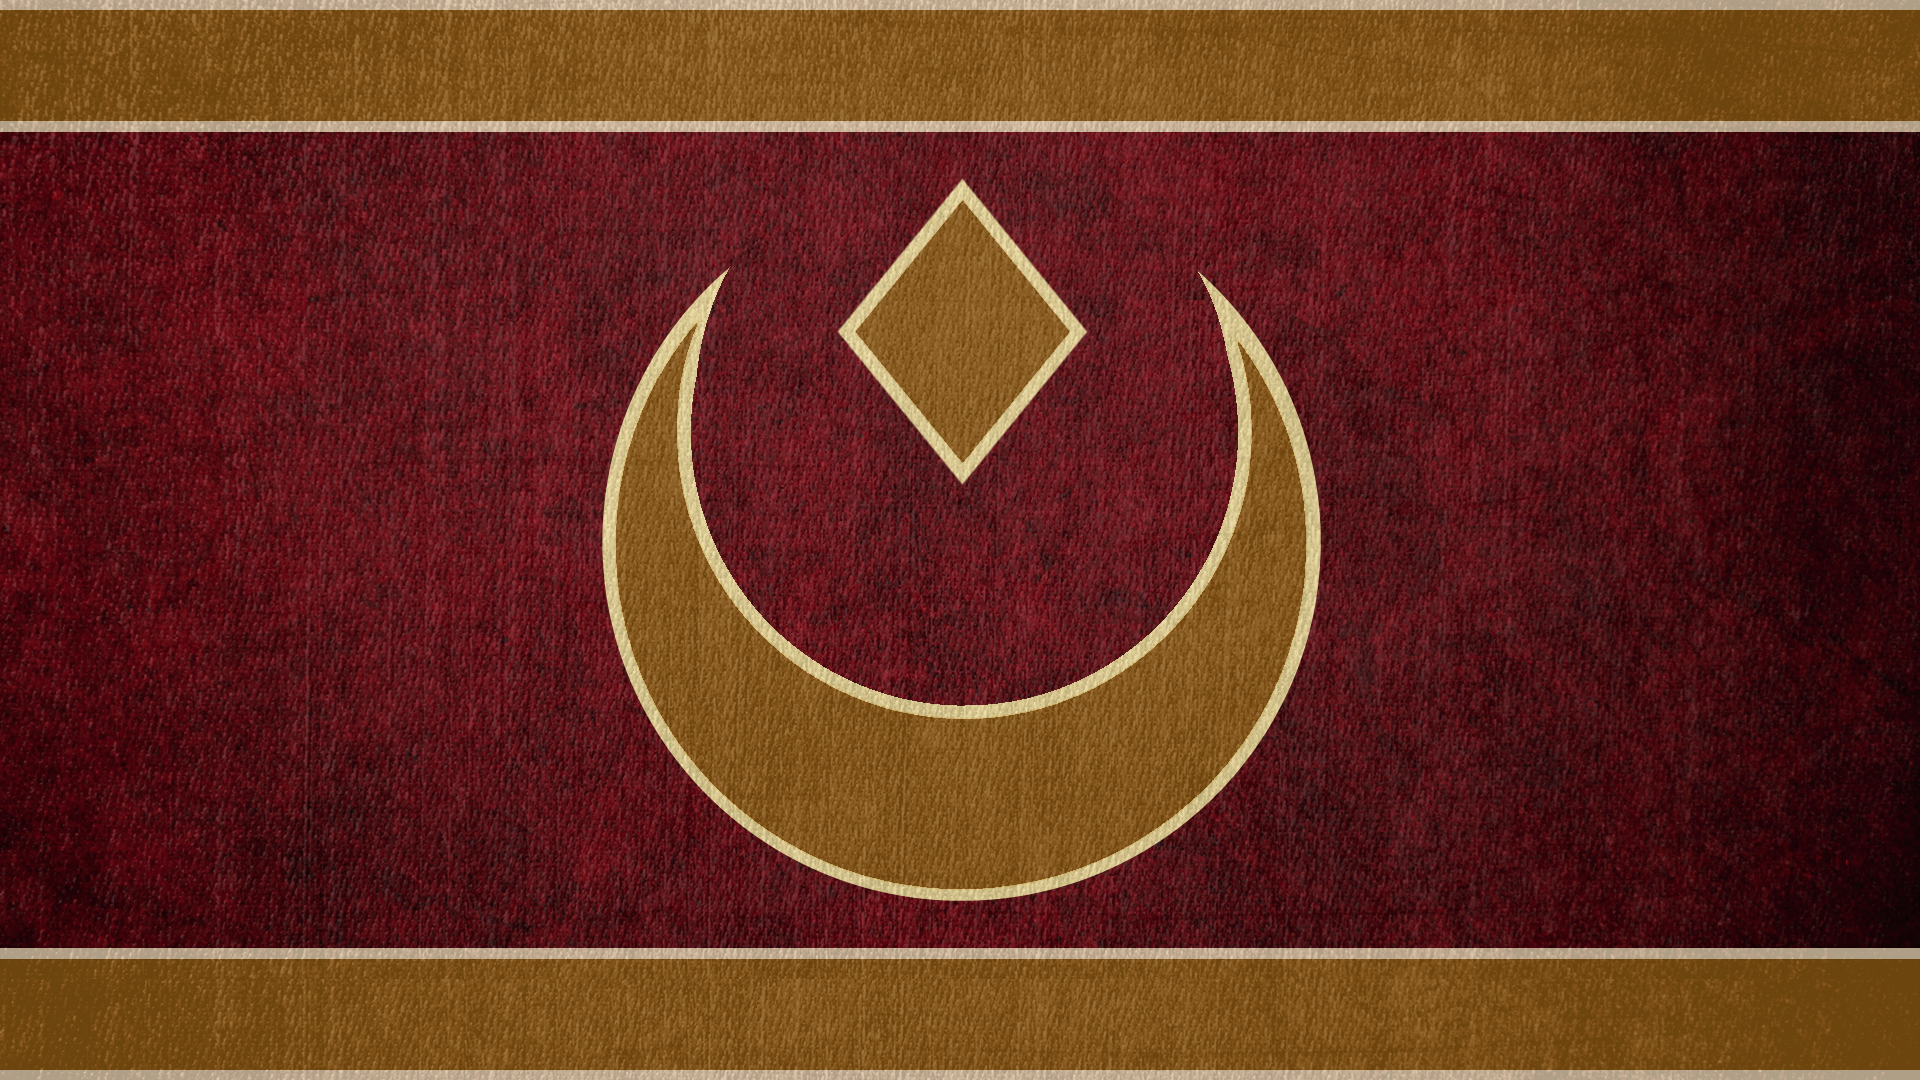 12 AD - Elsweyr Flag.png